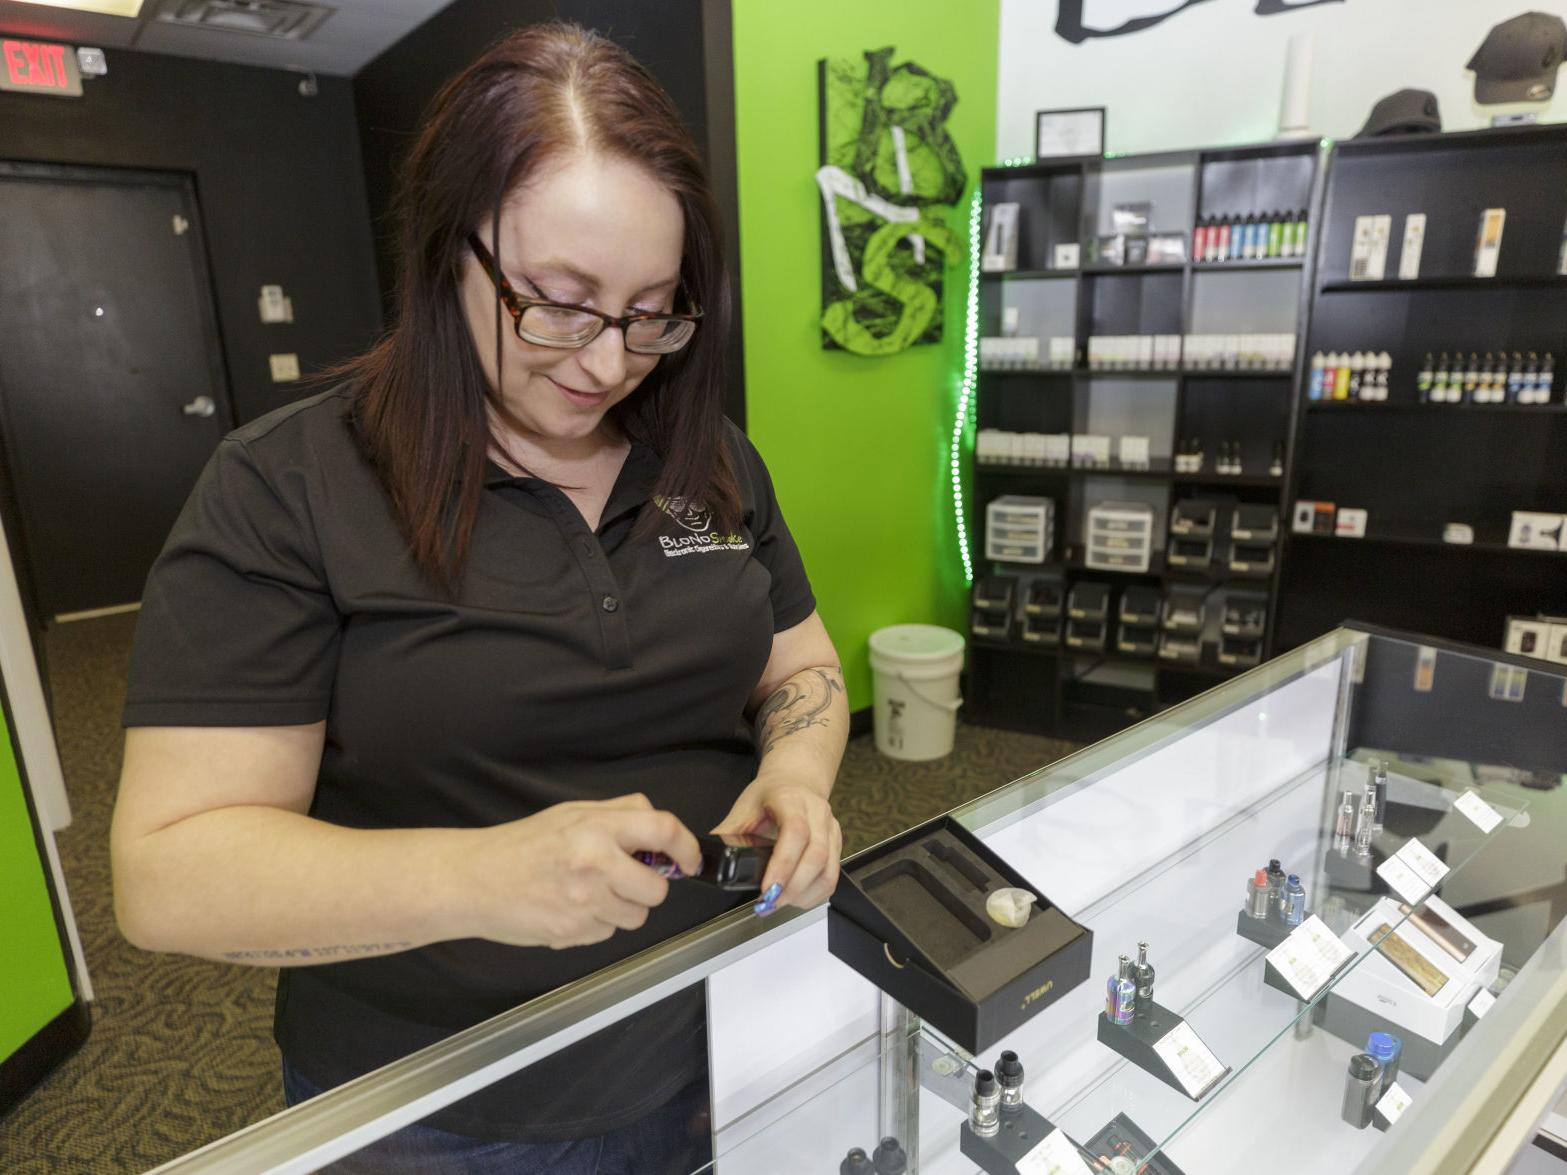 Central Illinois vape shops prepare for federal ban on some flavored vaping  products   Public Safety   herald-review.com